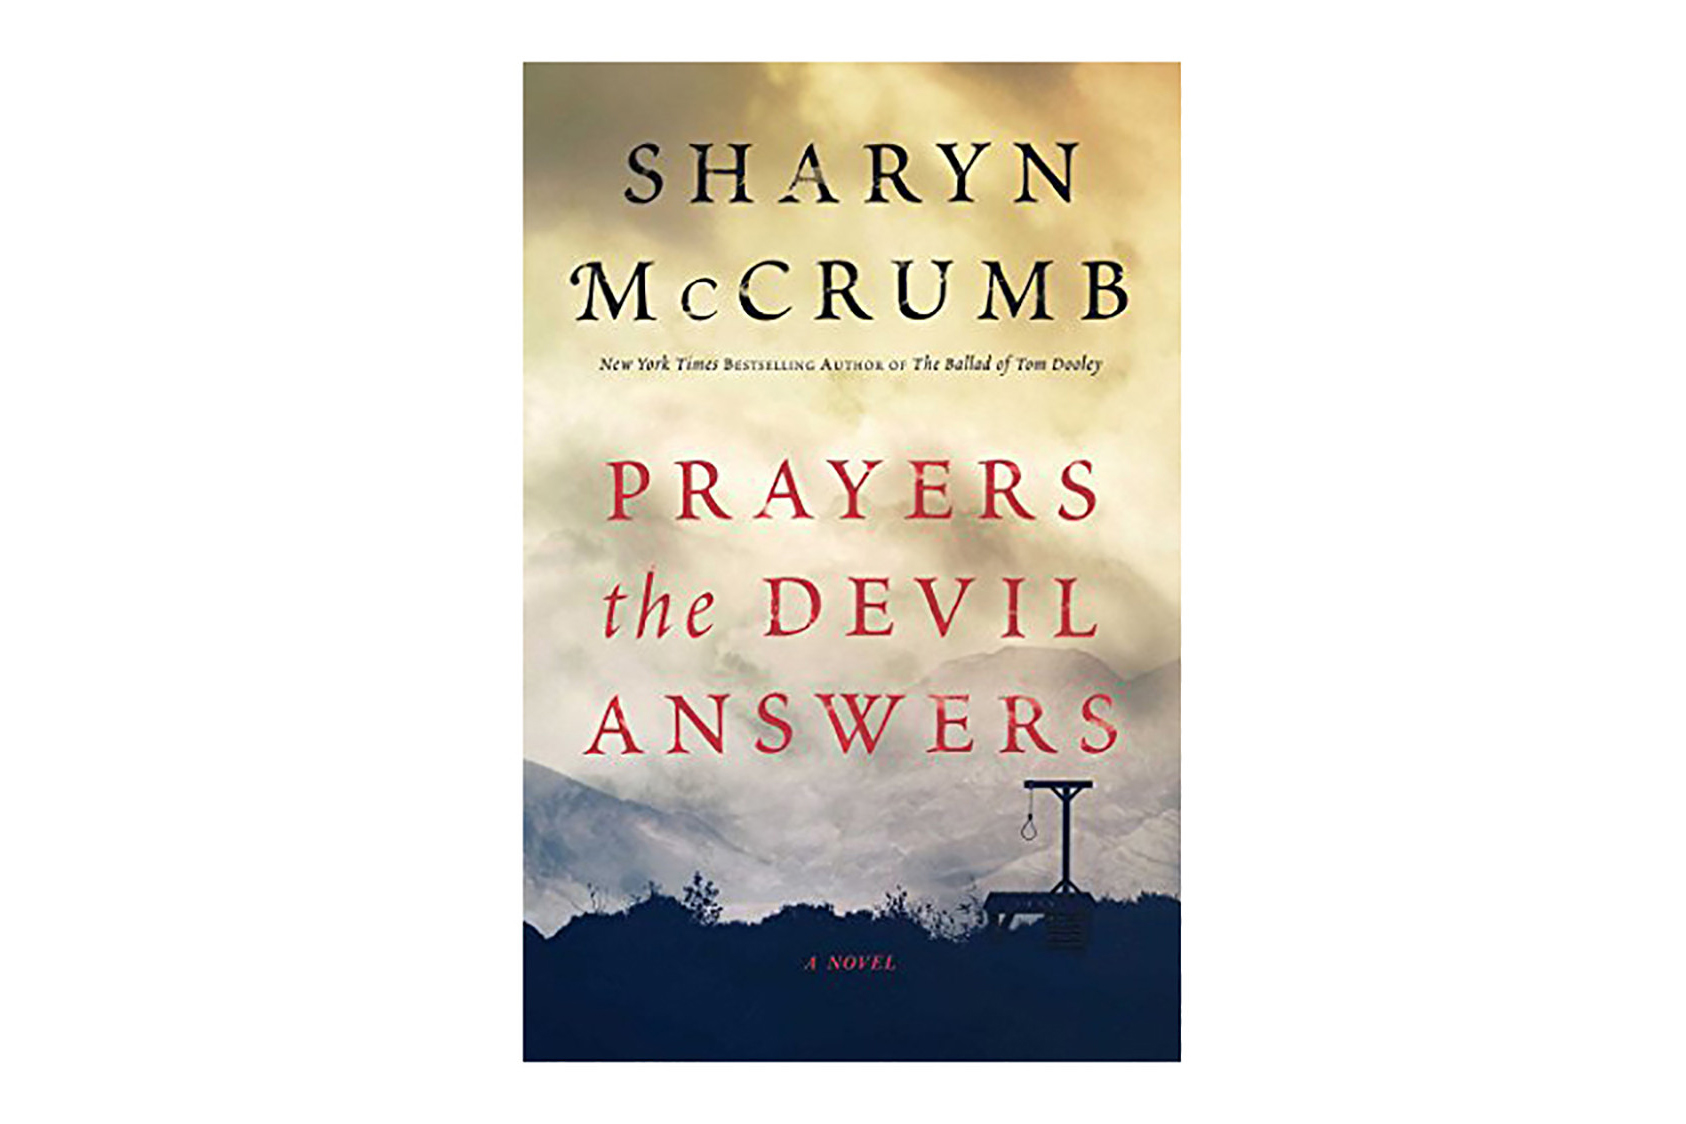 Prayers the Devil Answers by Sharyn McCrumb